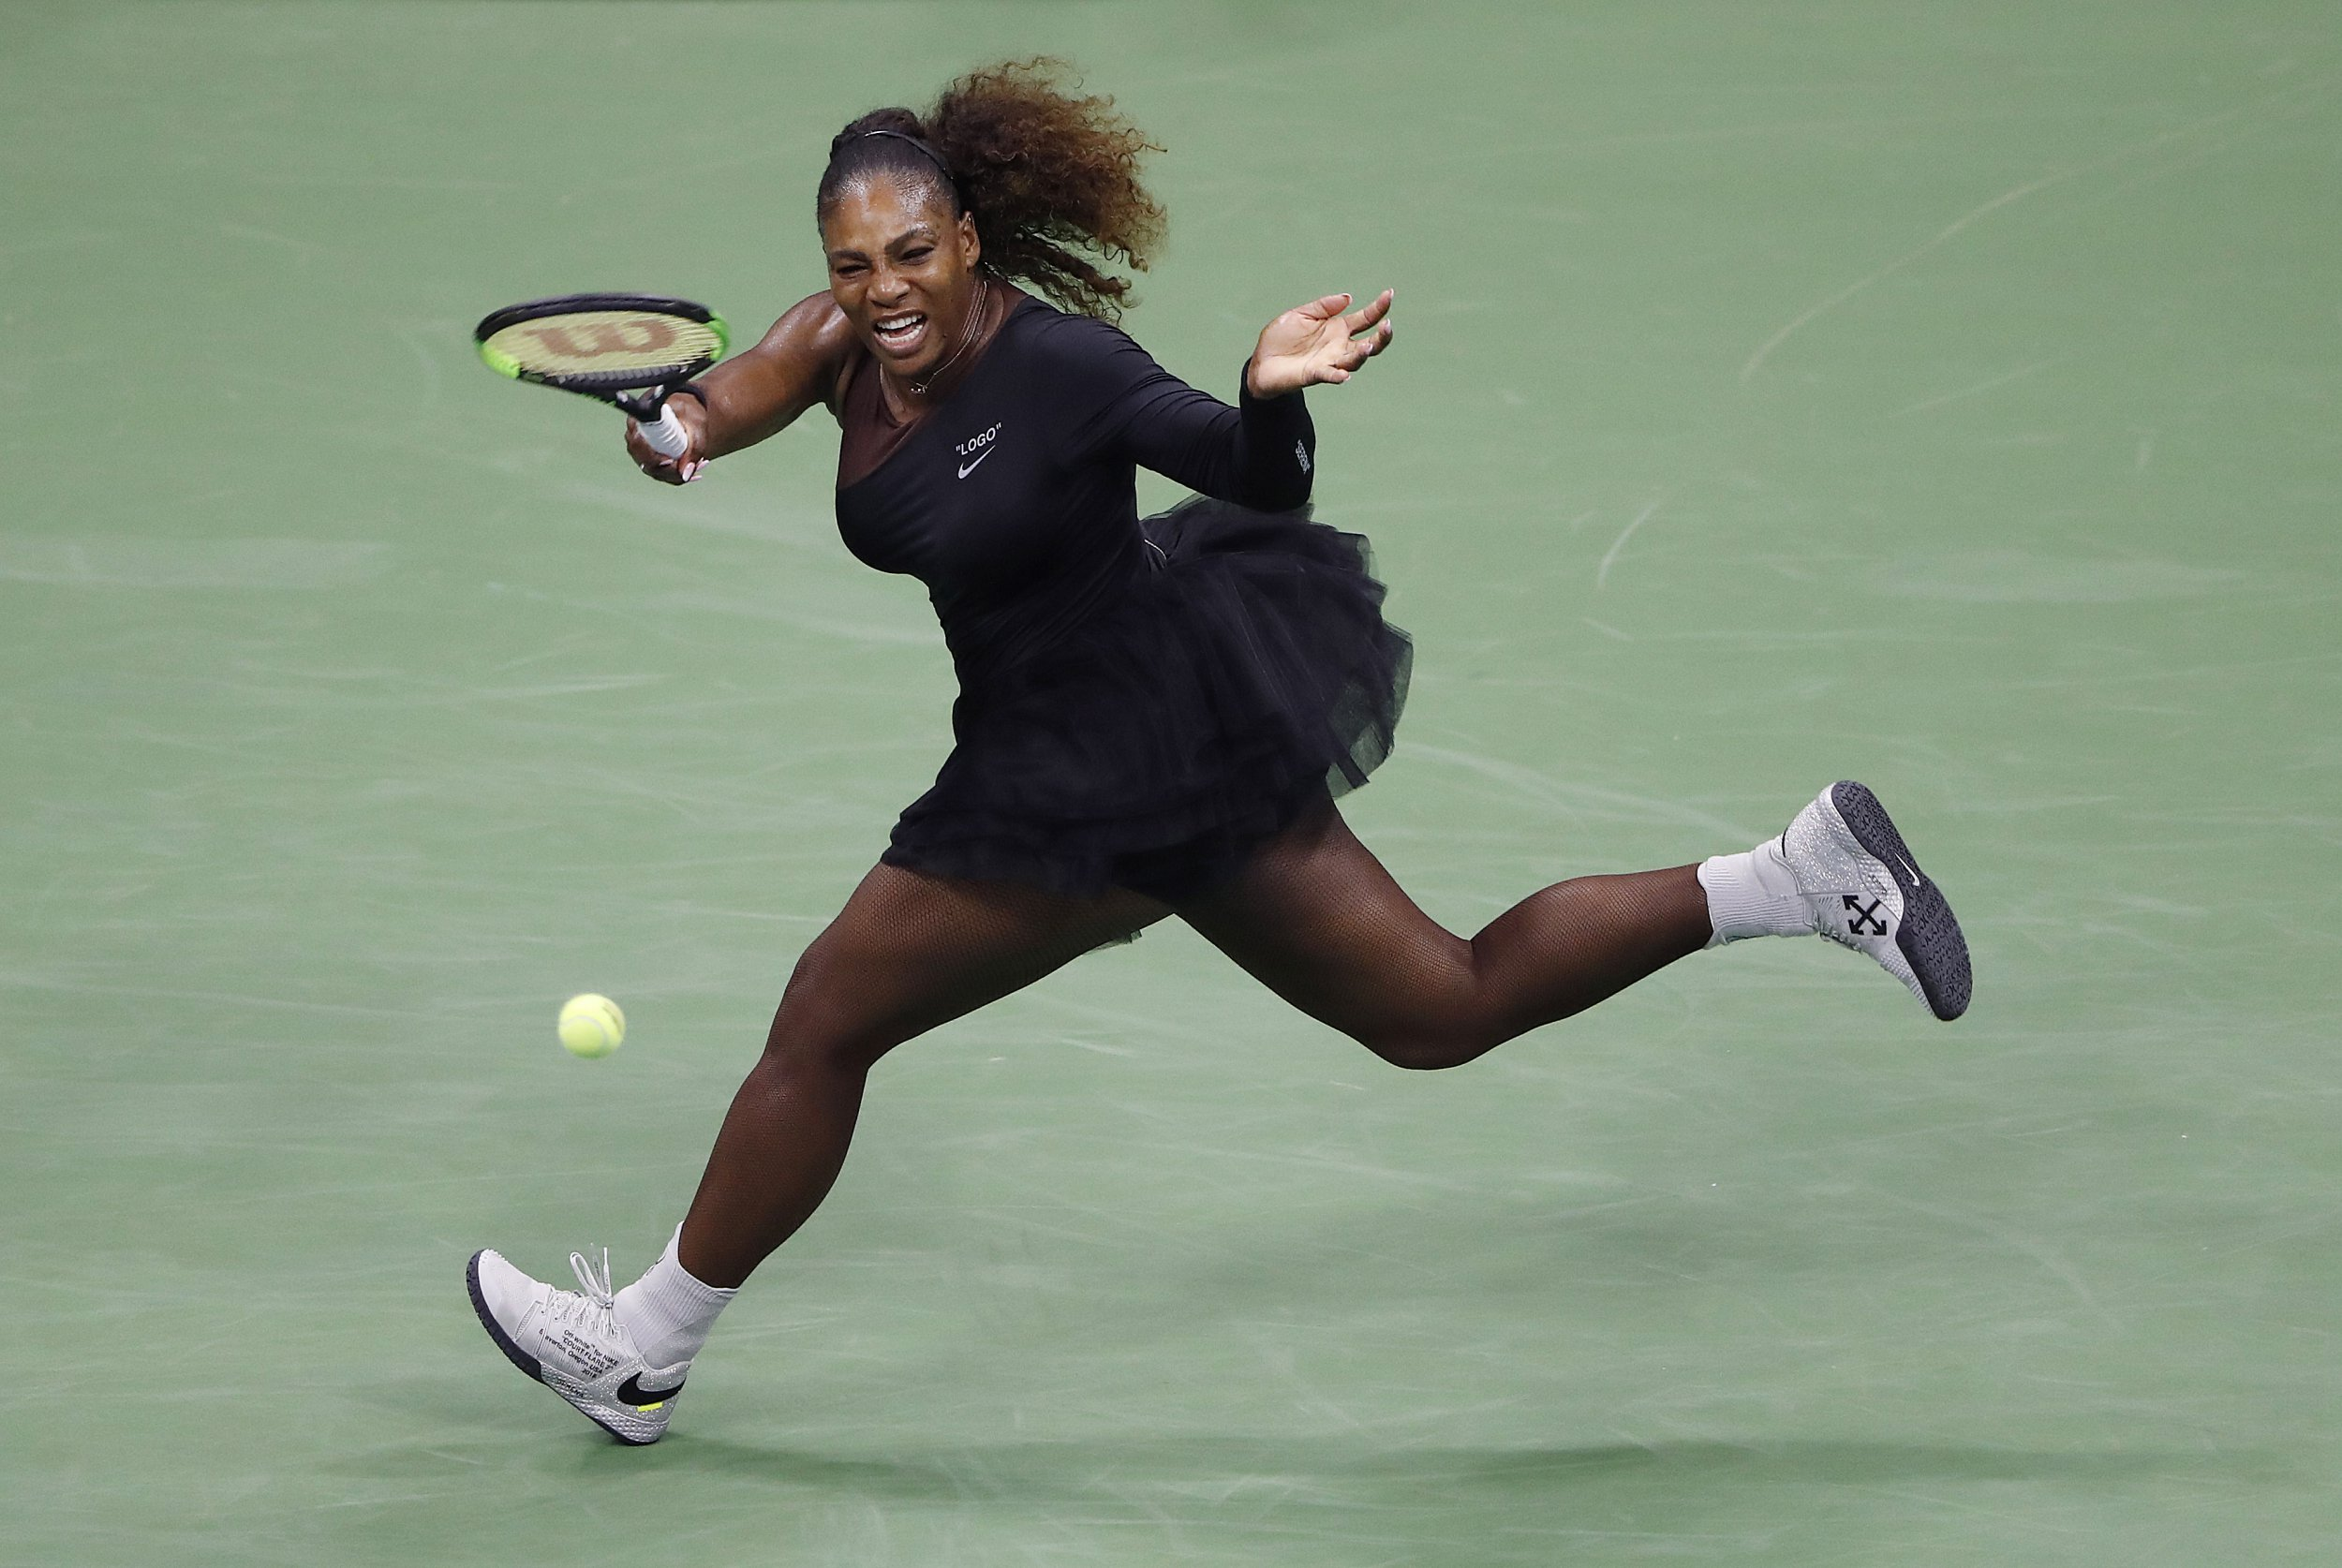 Serena Williams plays down 'Queen' title – but admits she could have been royalty in a past life